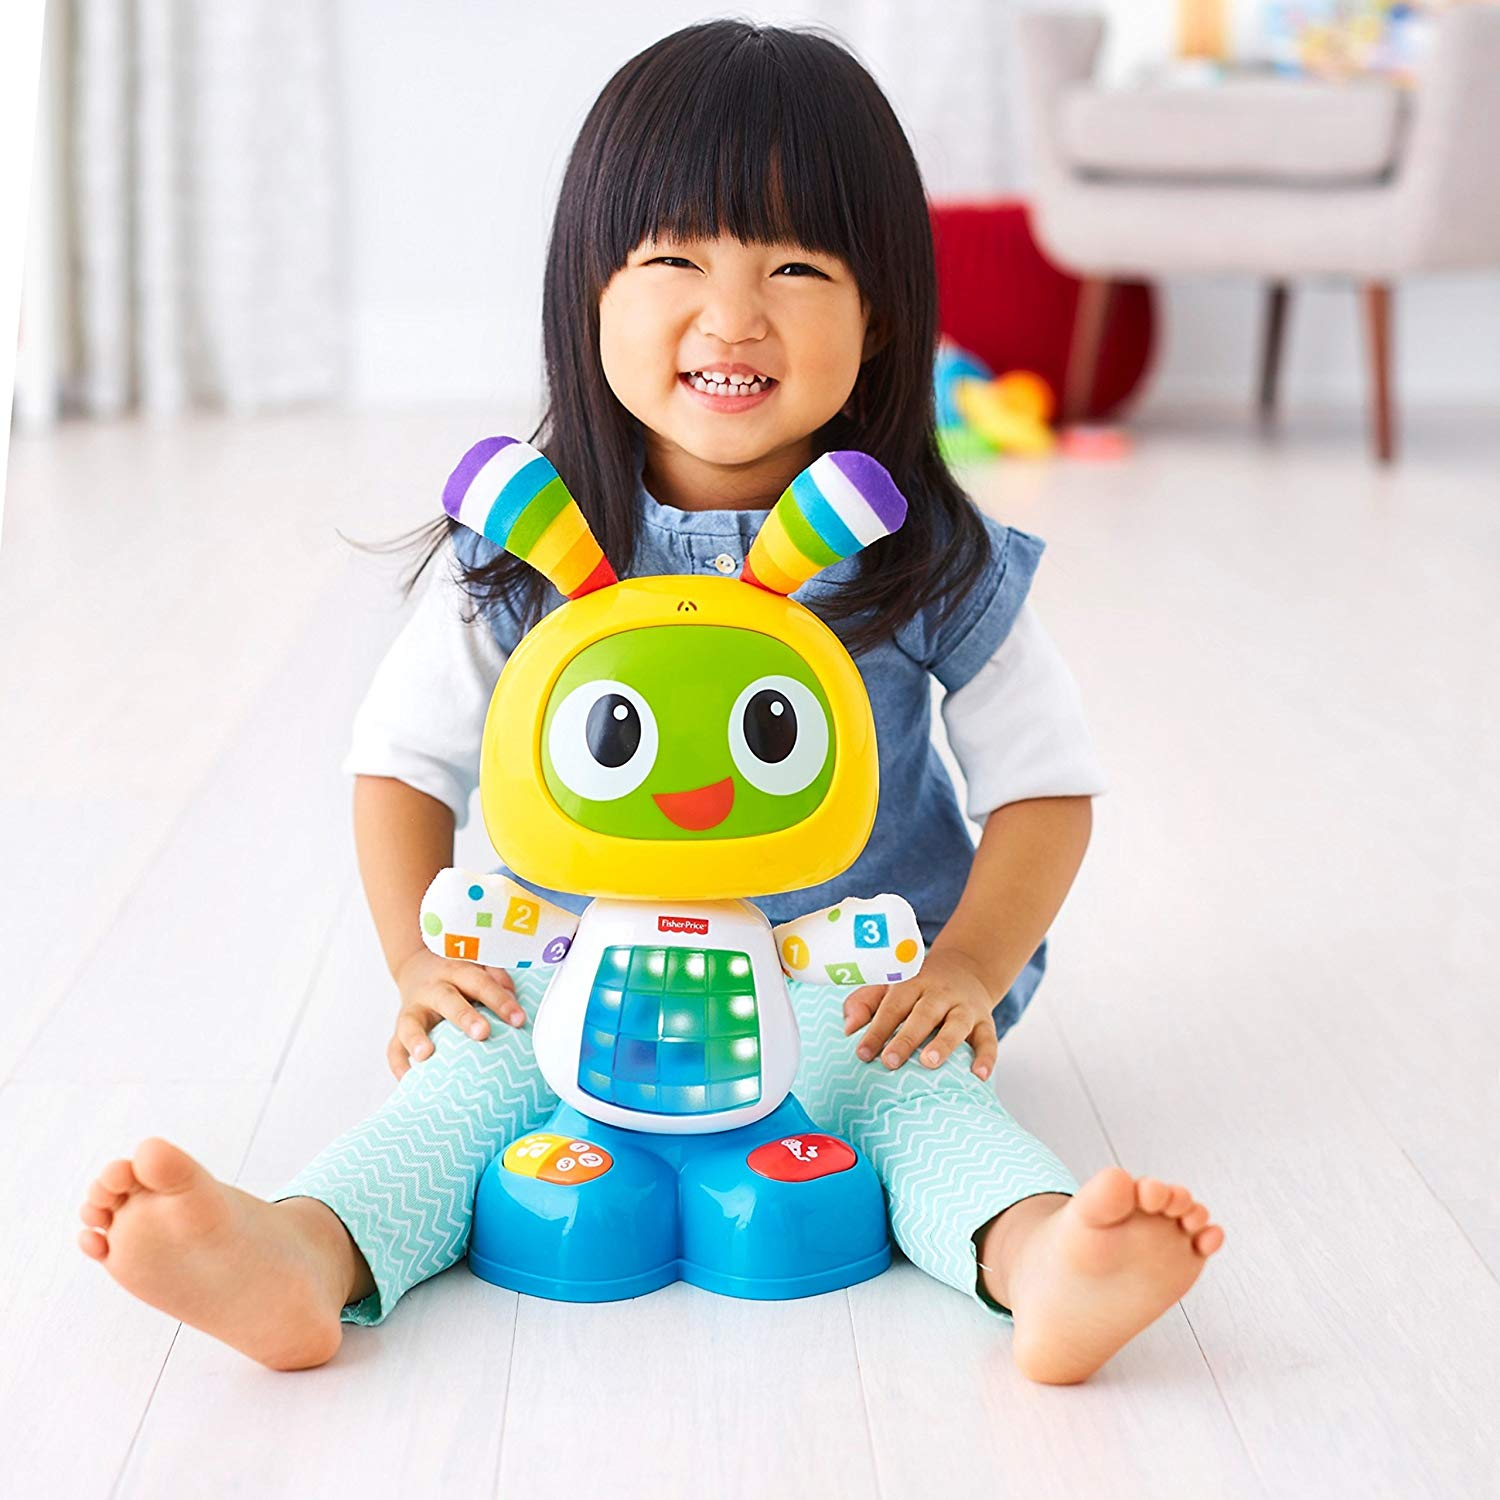 Welp Fisher Price Beatbo Review: The Future of Baby Toys JZ-64